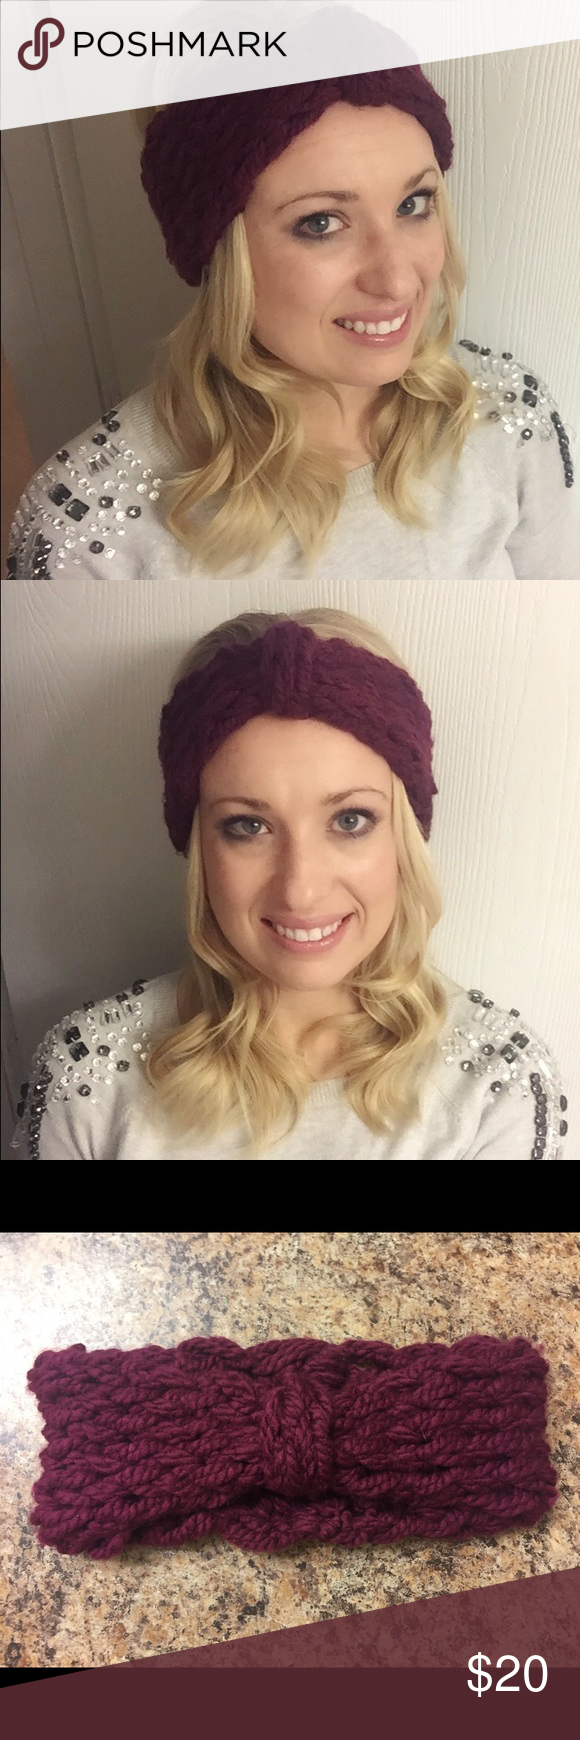 Handmade Knitted Headband This is a gorgeous magenta knitted headband. This is a handmade item. Perfect for a Christmas gift! I can also make hand bands per your specifications on color and size, just message me prior to purchasing! Thank you and stay warm! Accessories Hair Accessories